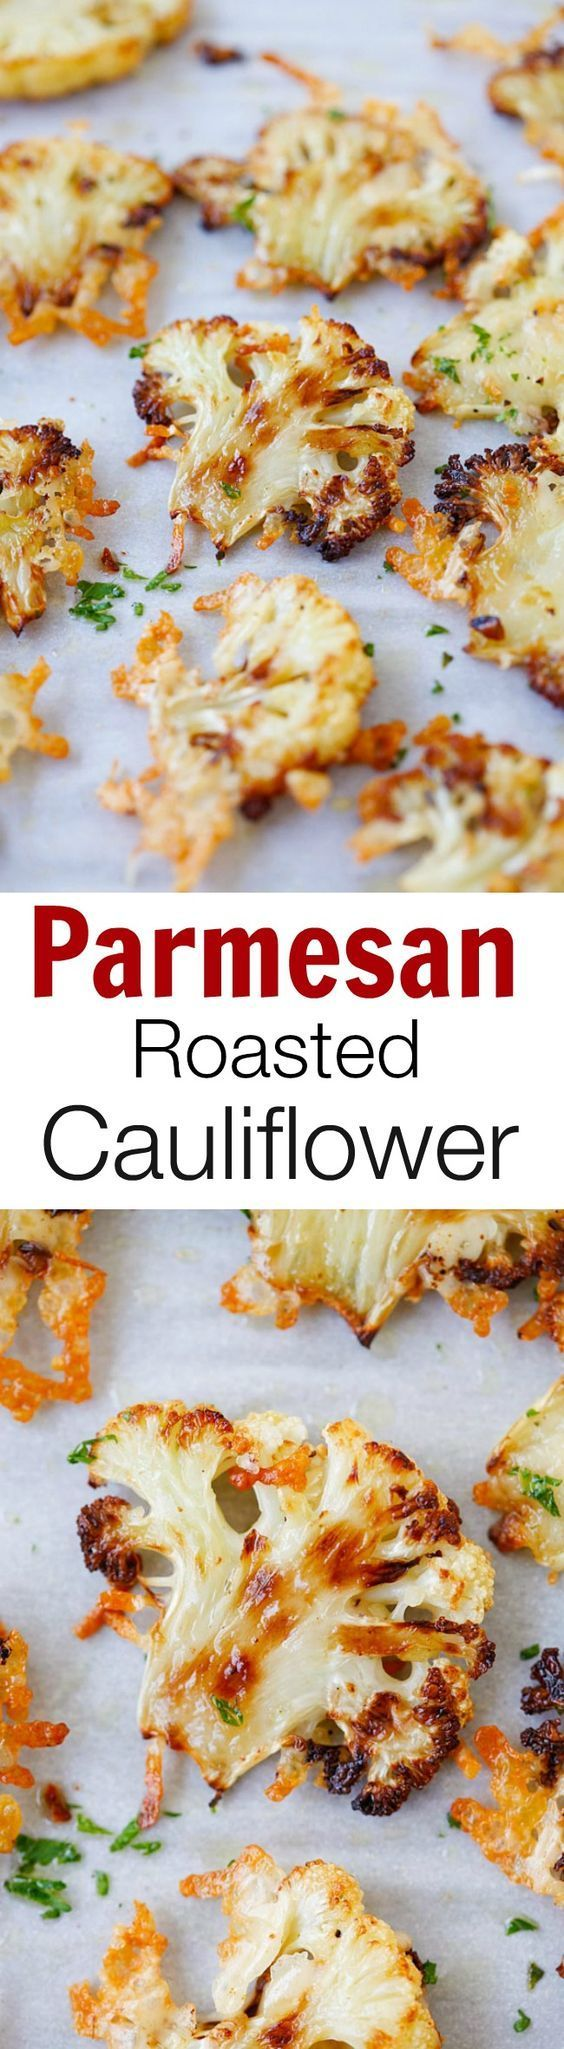 Parmesan Roasted Cauliflower – the most delicious cauliflower ever, roasted with butter, olive oil and Parmesan cheese. SO GOOD you'll want it every day!! | rasamalaysia.com